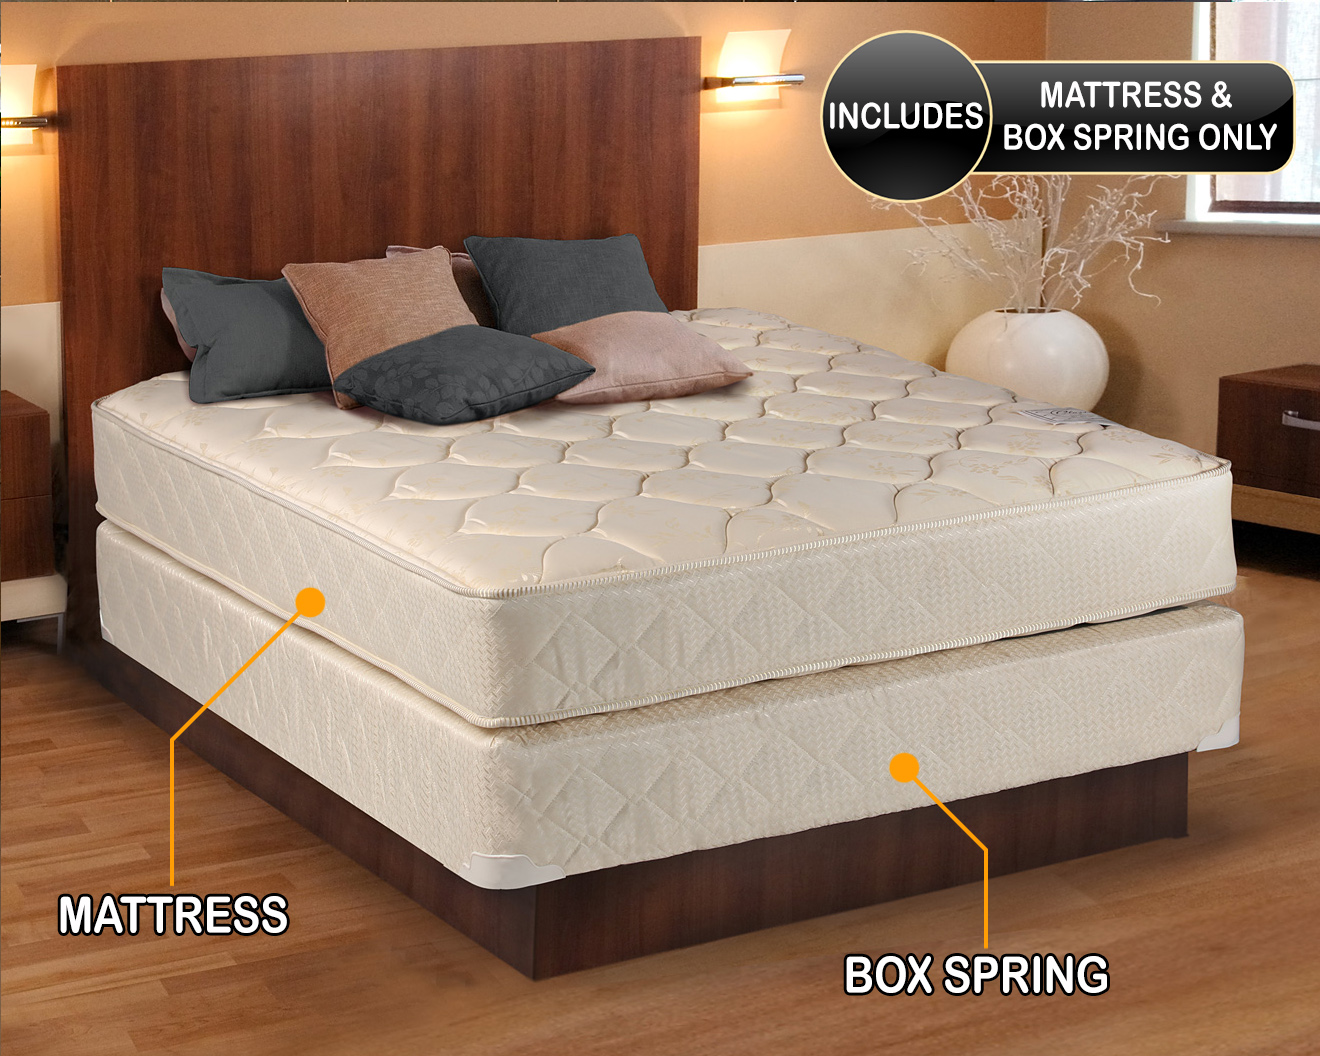 Comfort Classic Gentle Firm Full Size (54 x75 x9 ) Mattress and Box Spring Set - Full y Assembled Orthopedic Good for your back Superior Quality - Long ... & Full-size Mattress Set Aboutintivar.Com